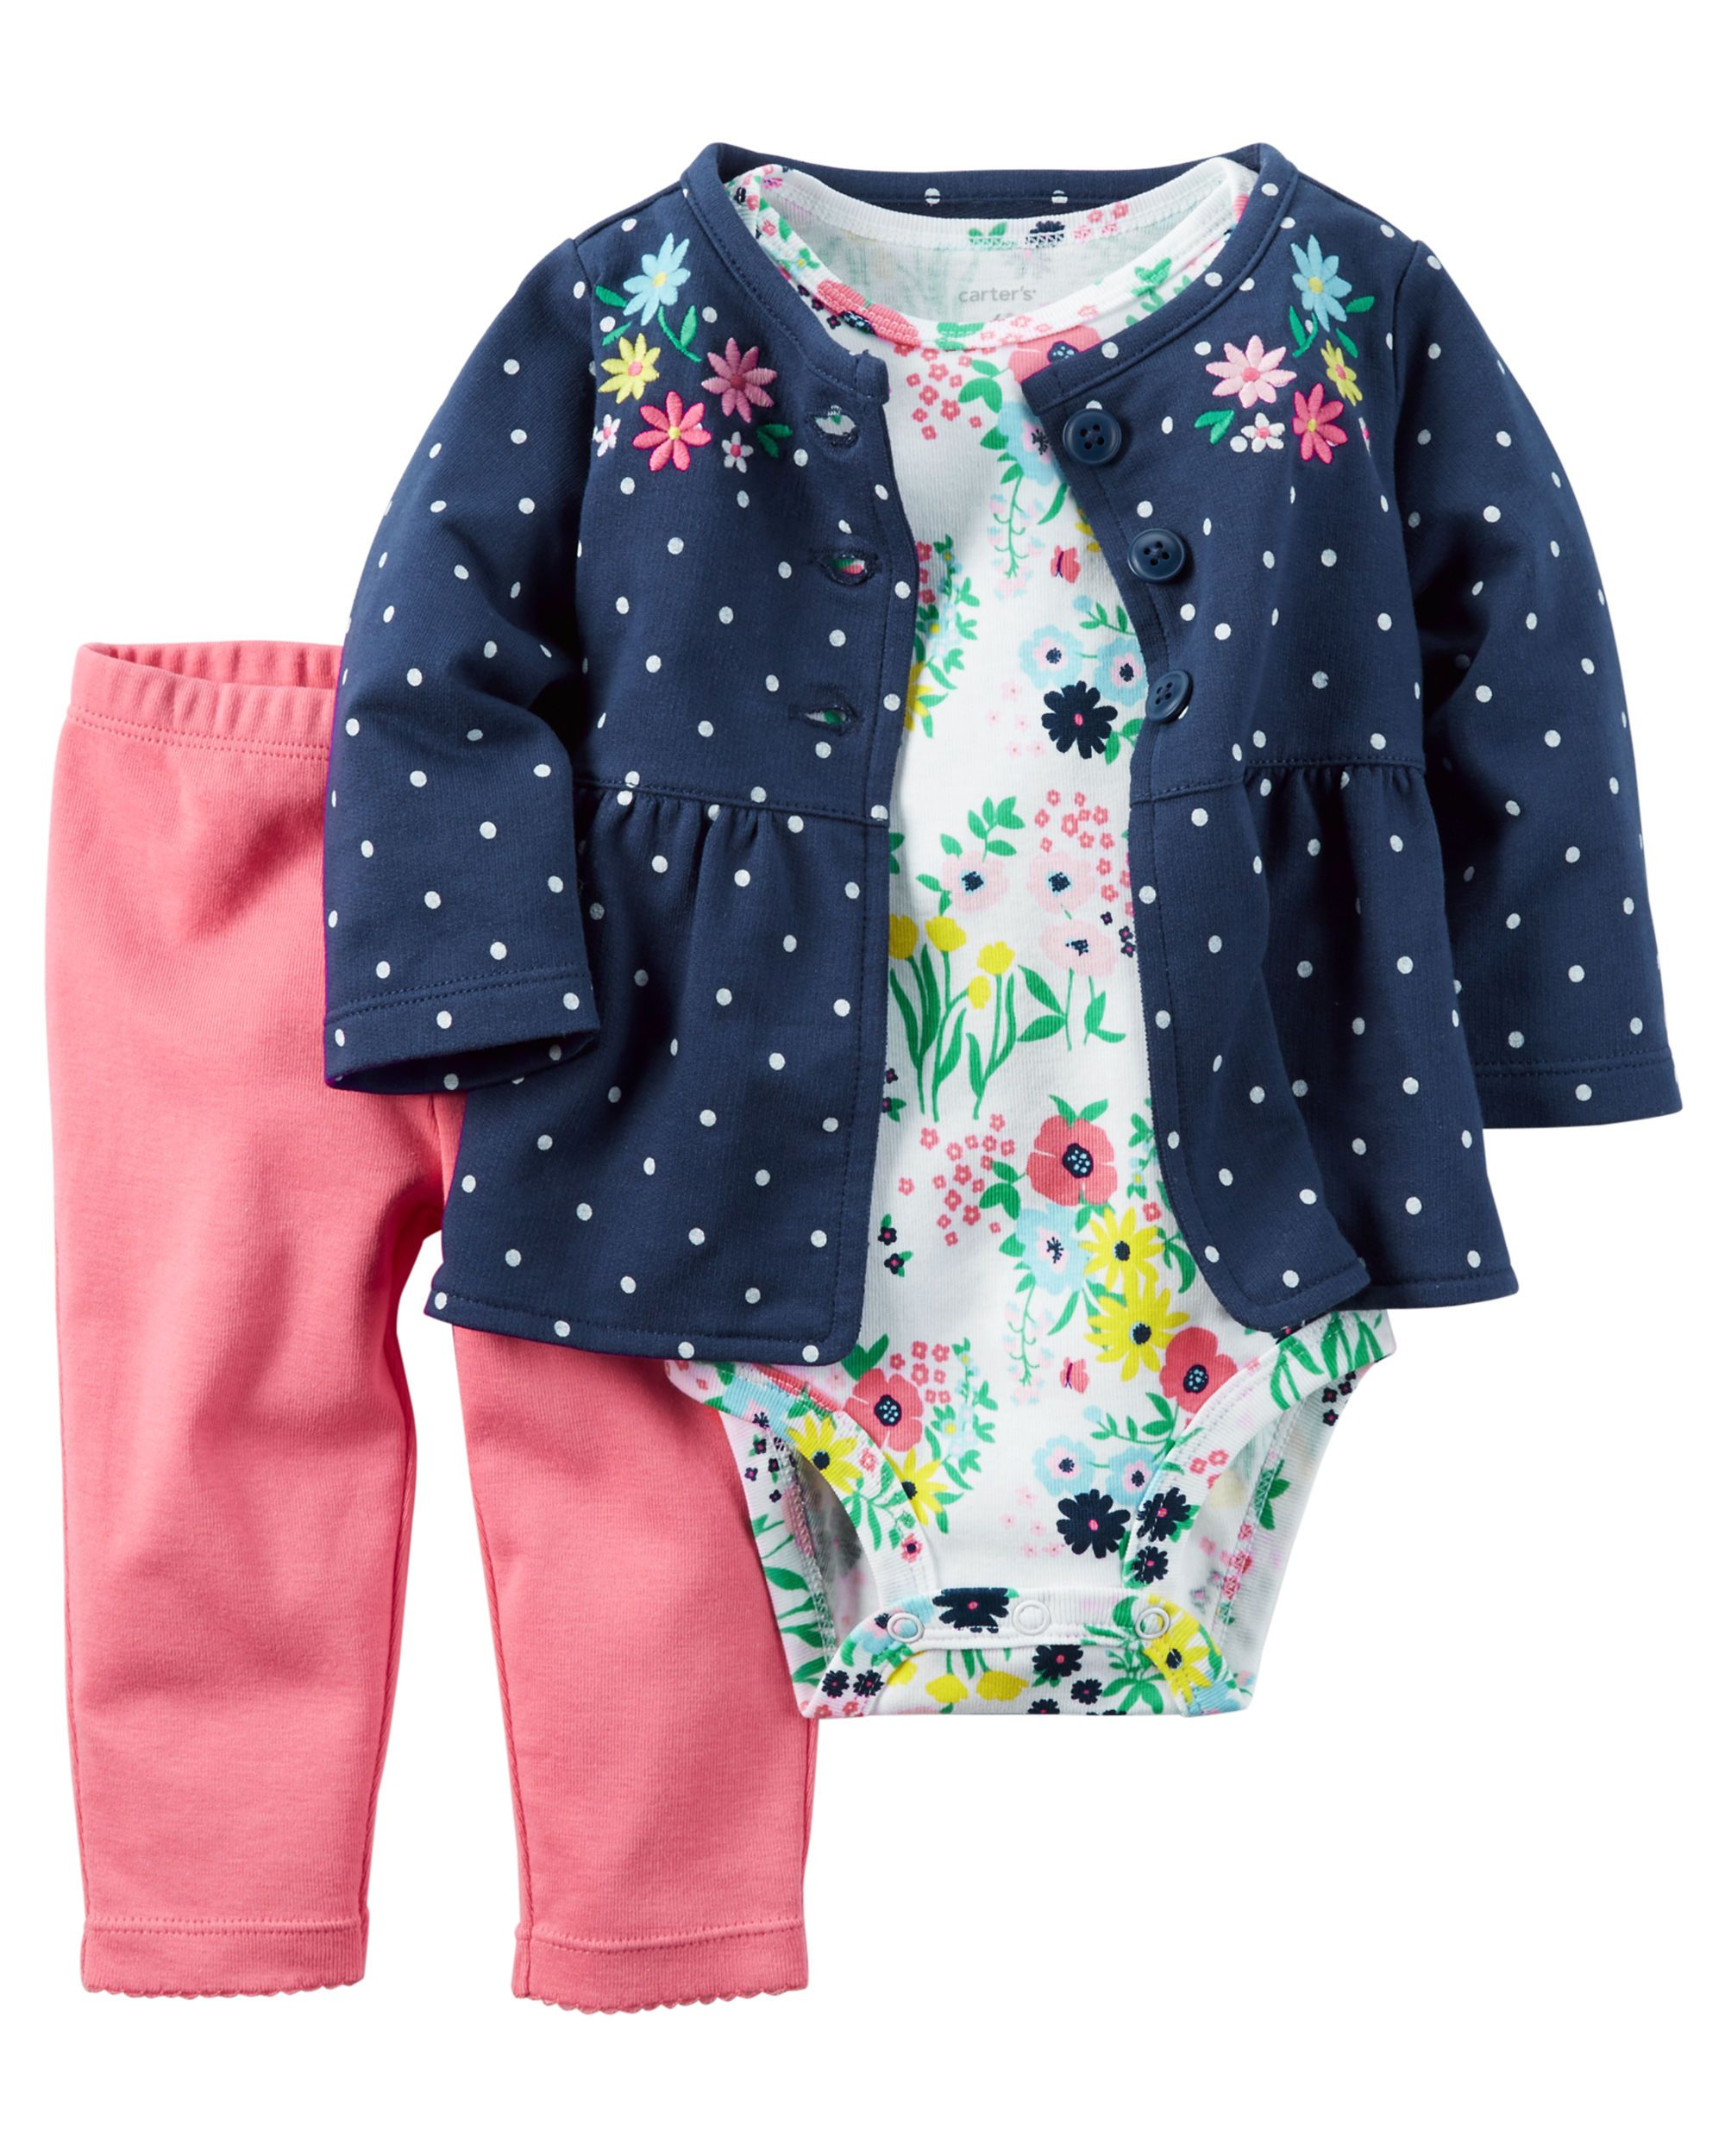 Baby Girl Clothes Newborn Clothing Set Cardigan Shawl/&Bodysuit Dress Flower Embroidery